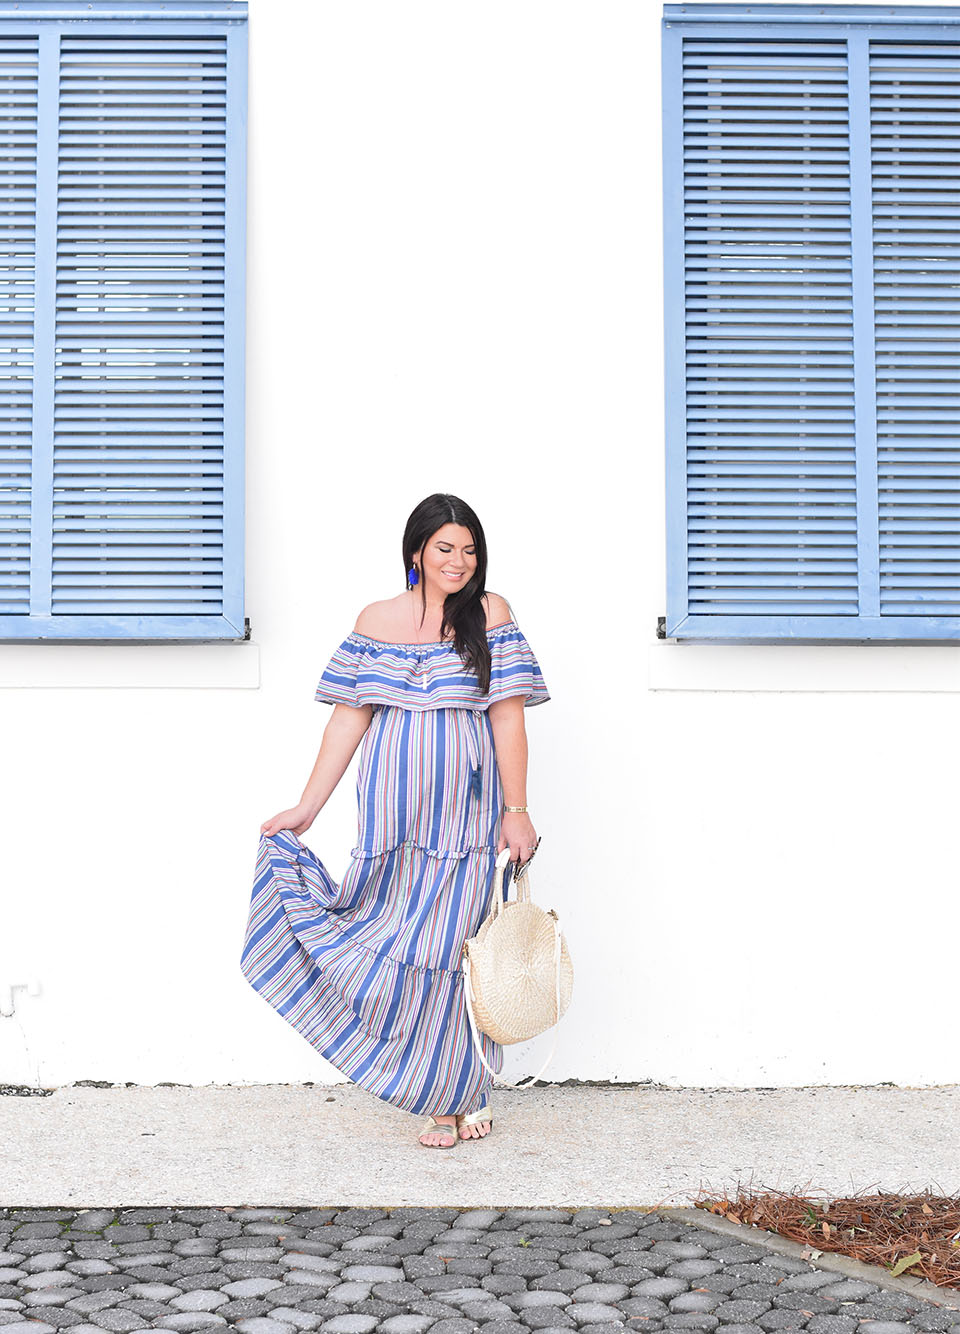 Blue Stripe Maxi Dress on 30A in Alys Beach